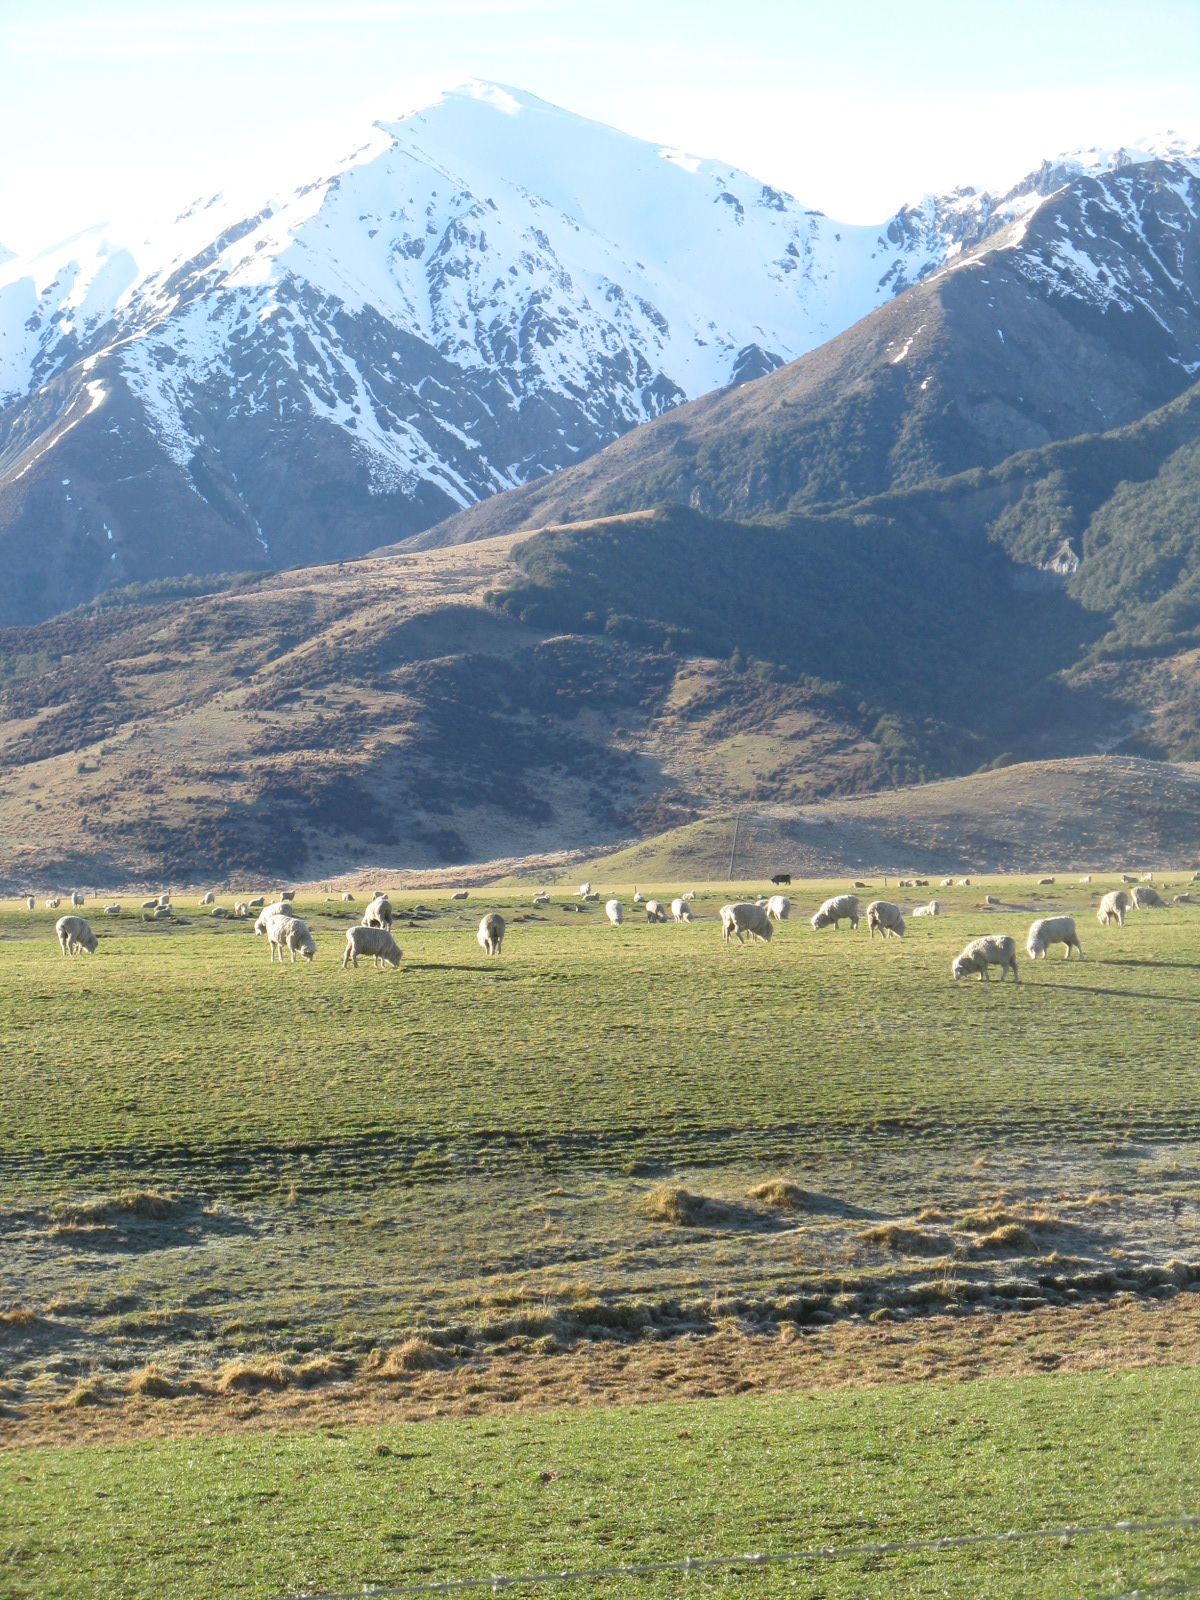 Of course there's tons of sheep in New Zealand